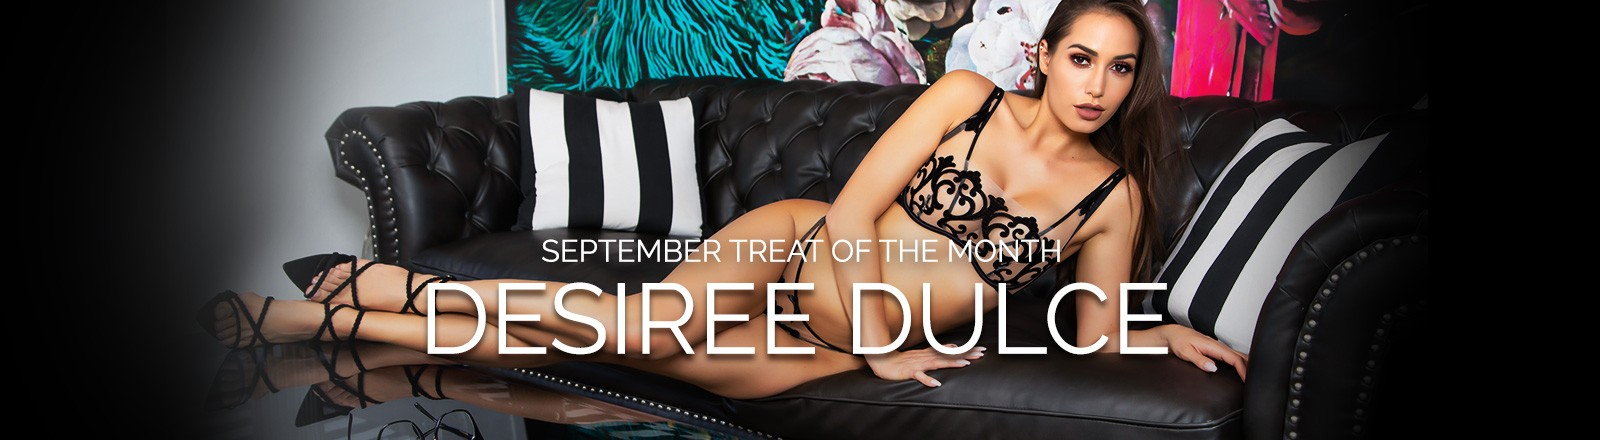 Check Desiree Dulce special video for Twistys Treat of the Month September 2019